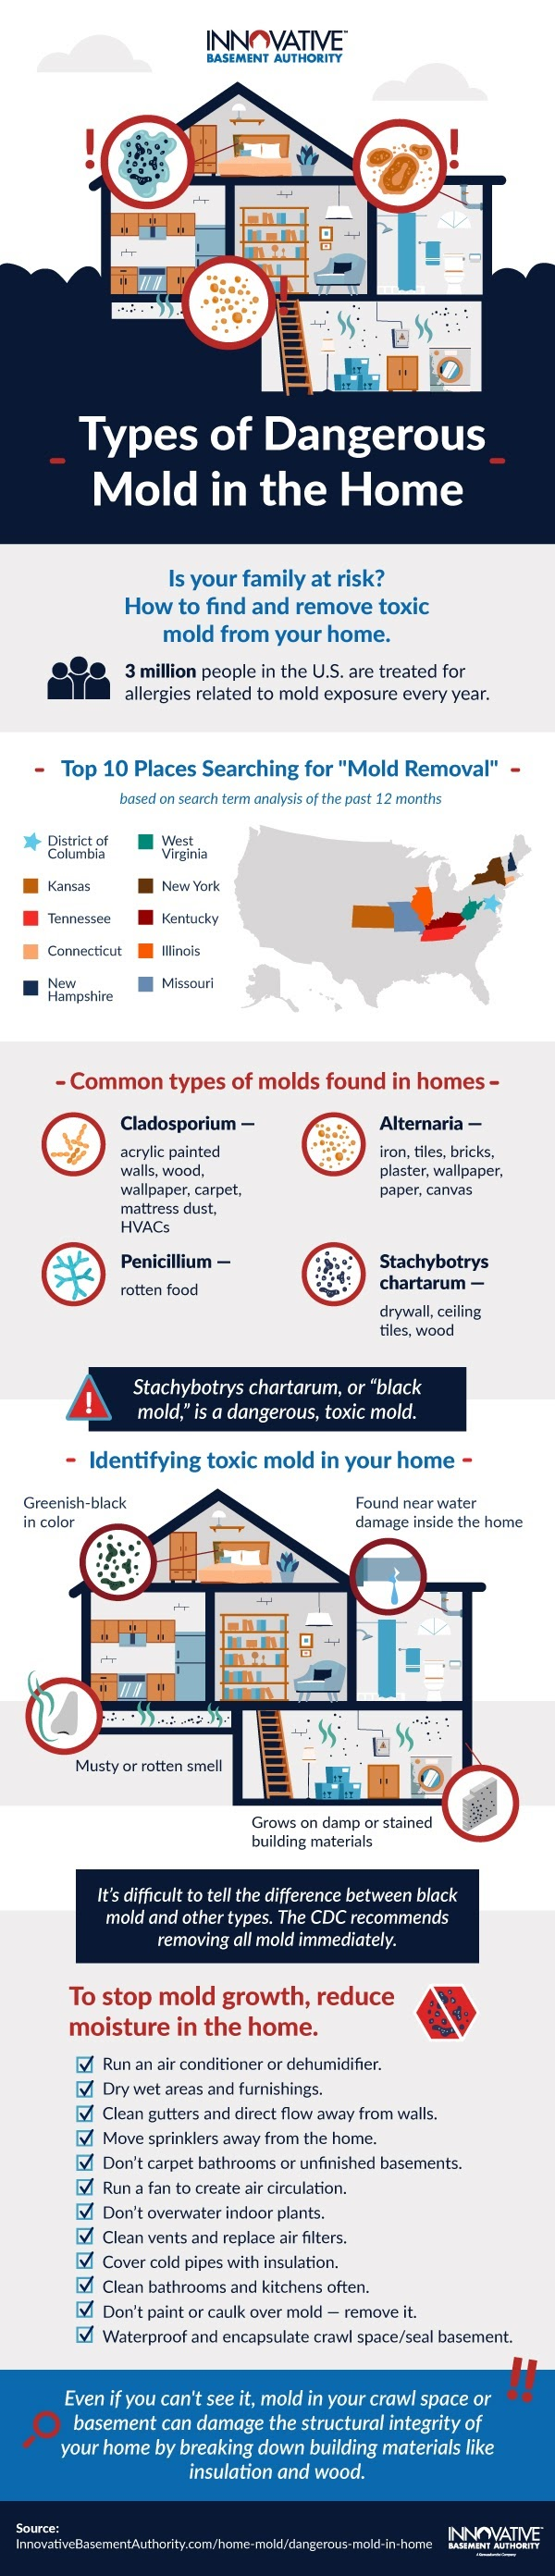 Different Types of Dangerous Mold in Our Homes #infofraphic